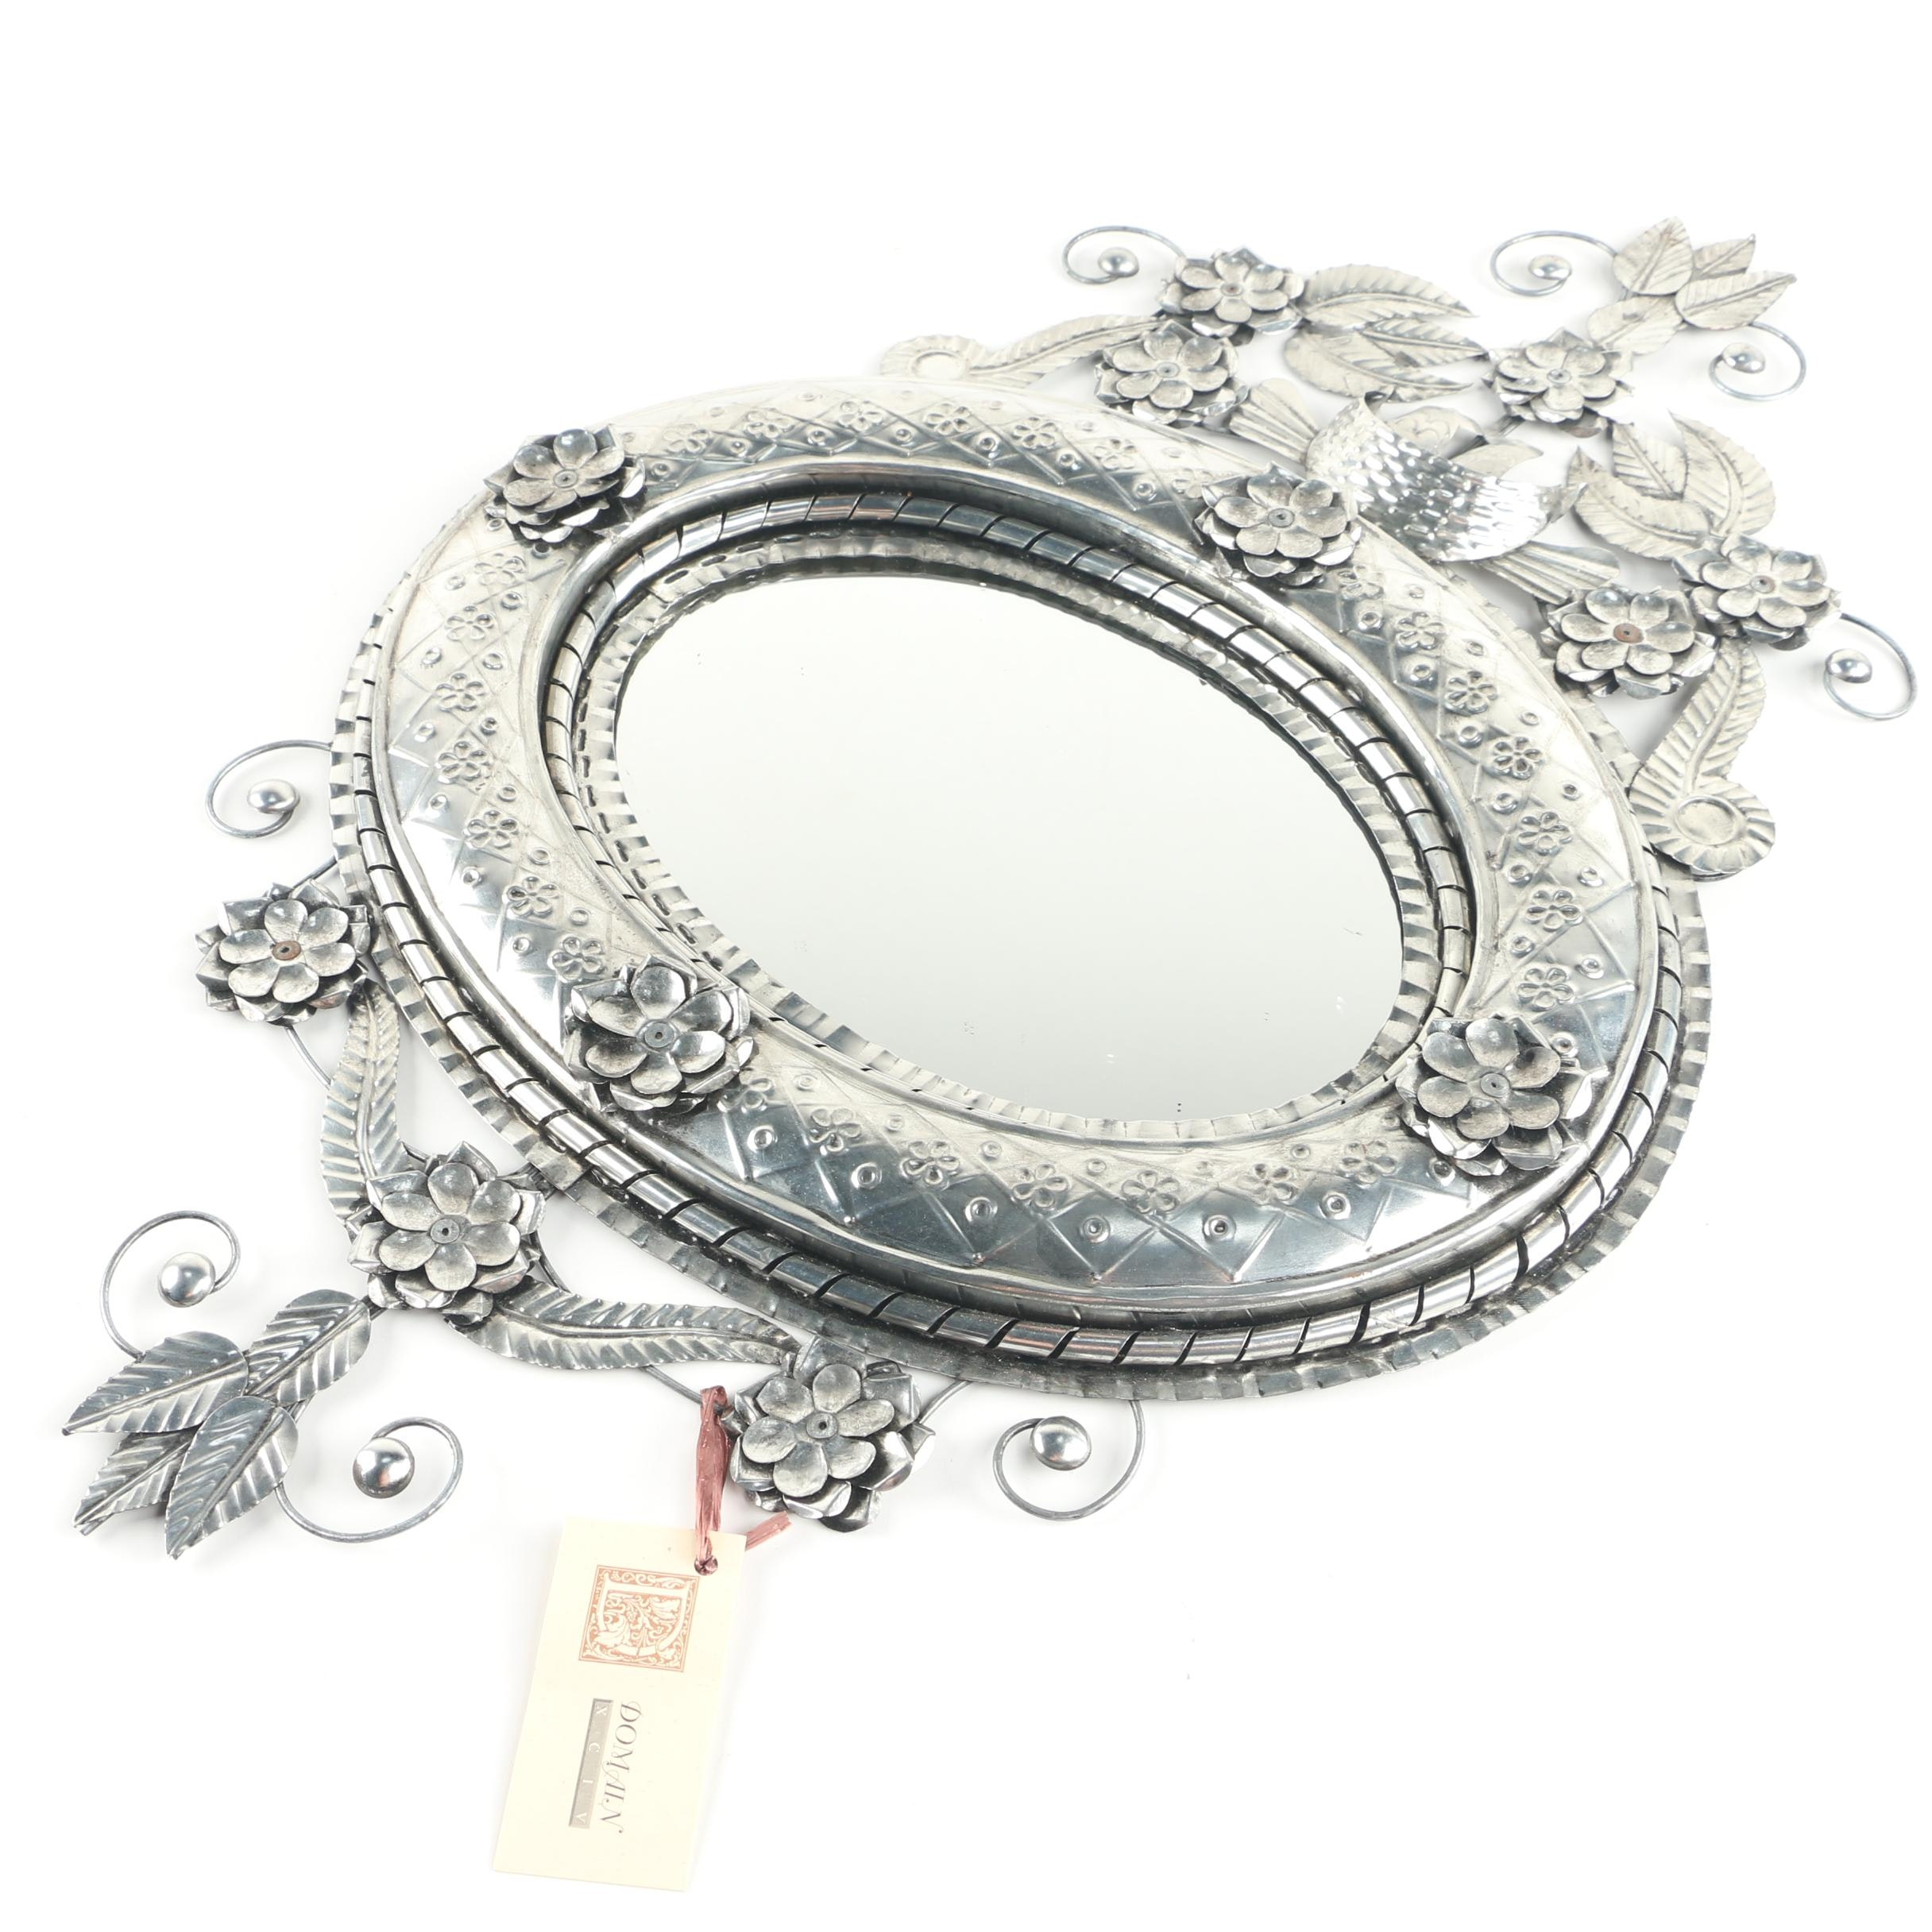 Ornate Domain Oval Silver Tone Tole Wall Hanging Mirror with Floral Scroll Motif